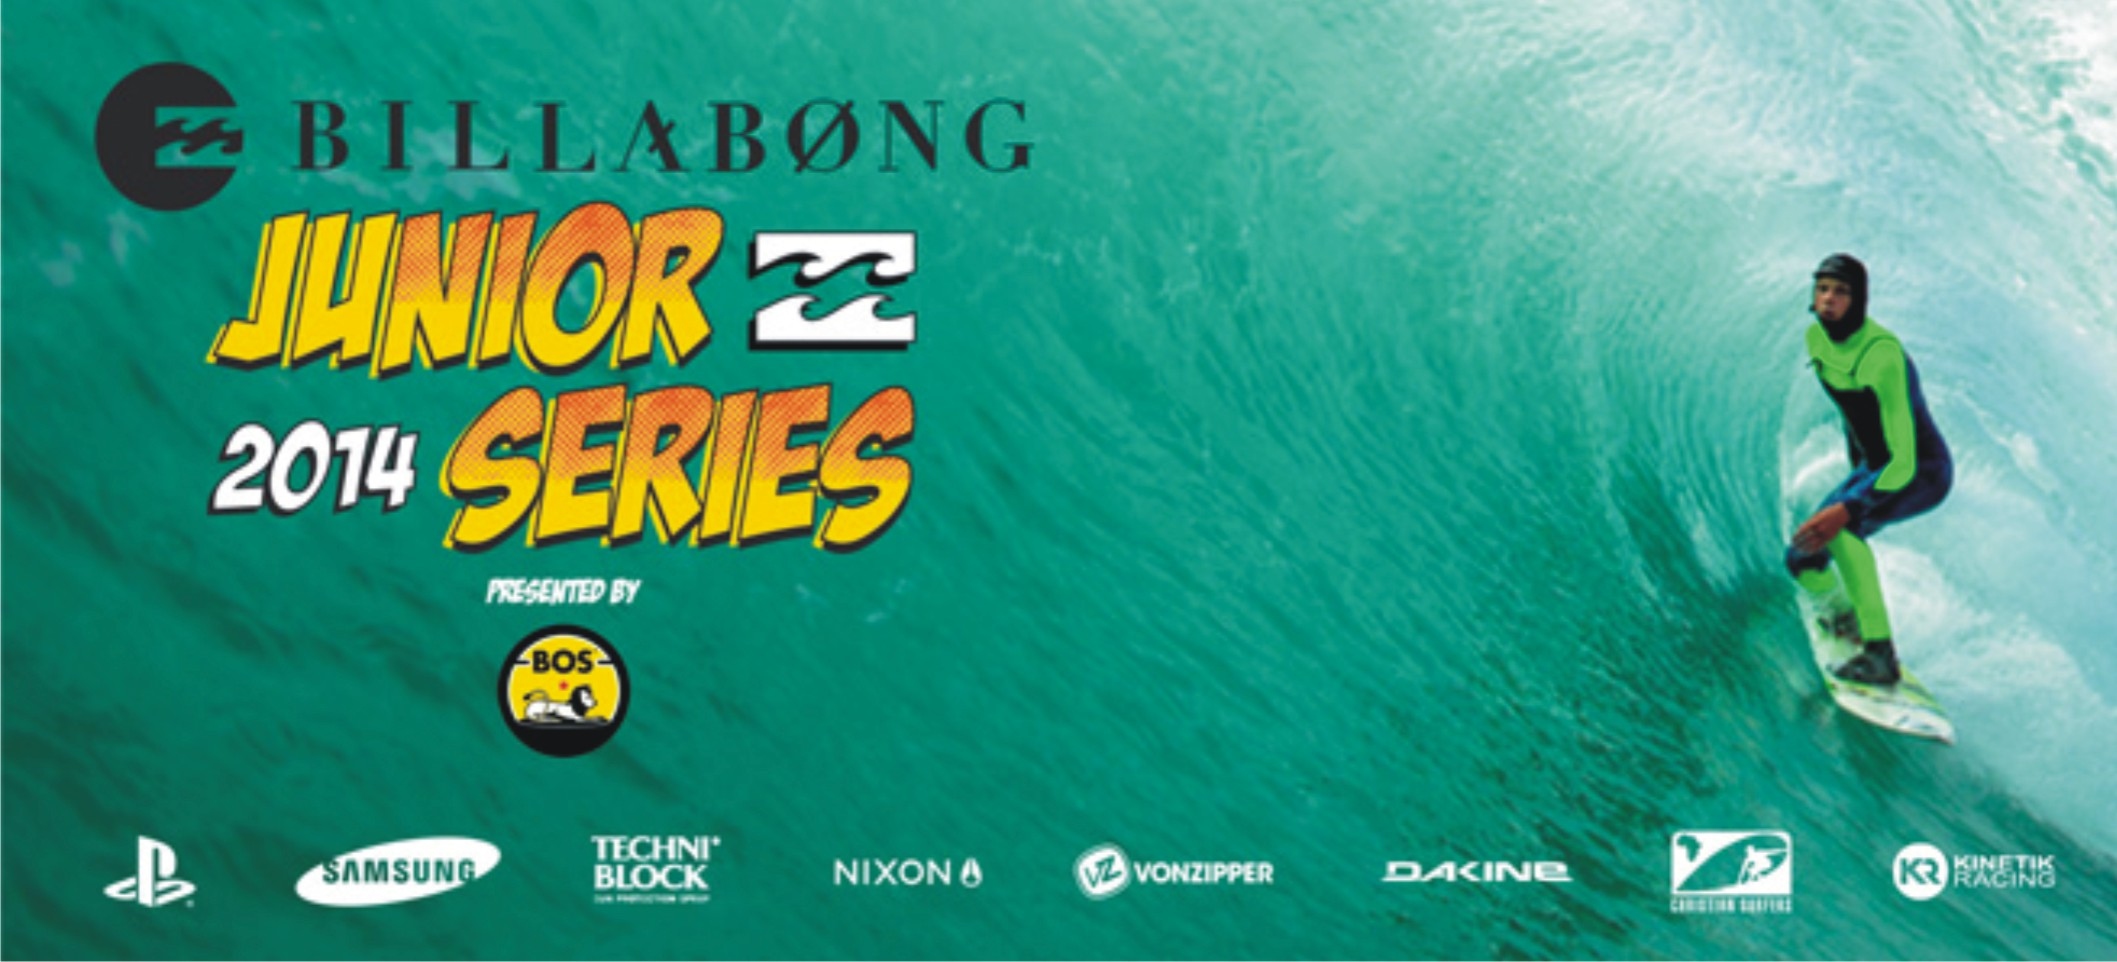 The Final stop of the Billabong Junior Series is here